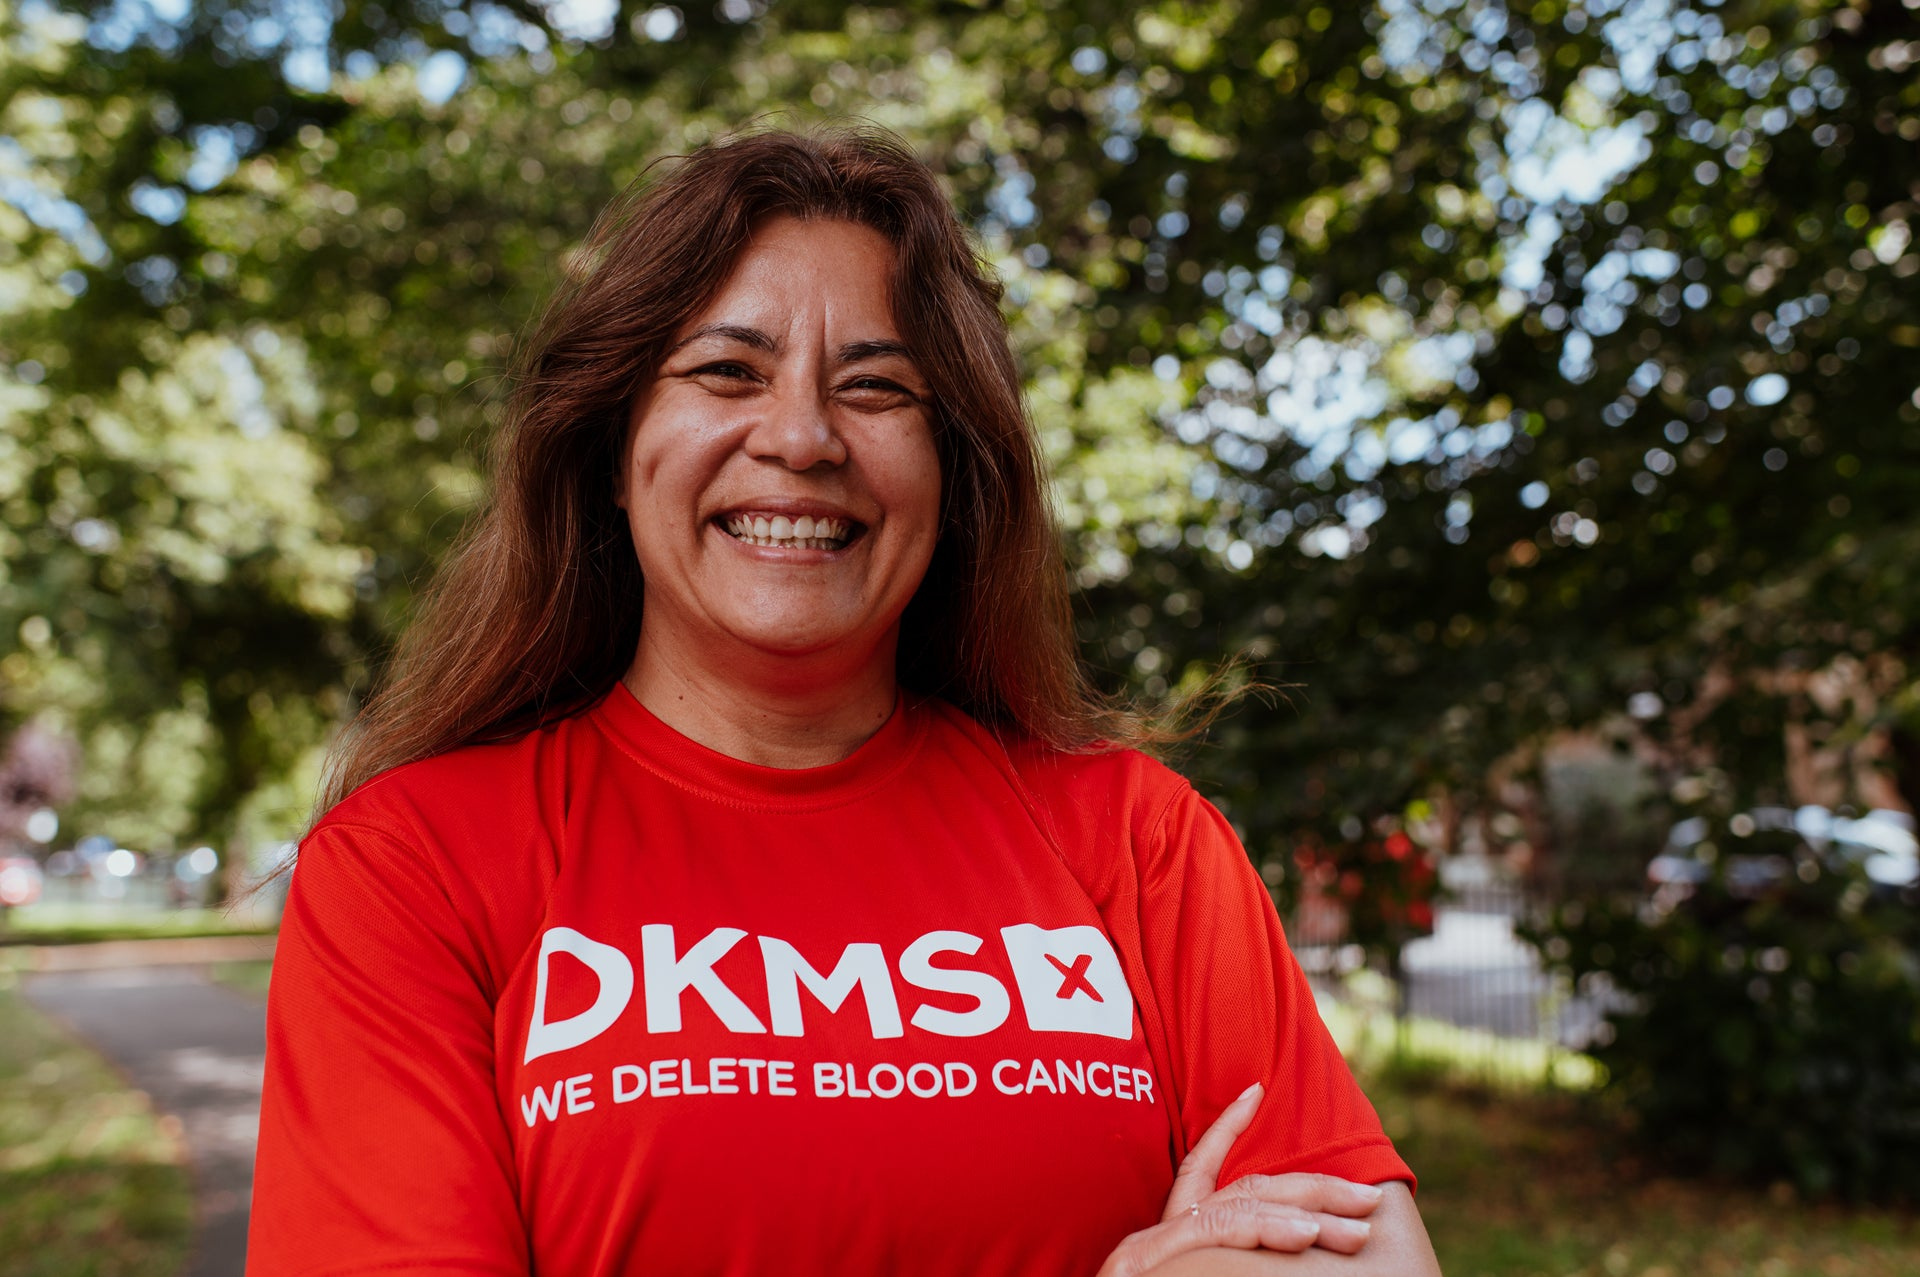 Flora, one of our fundraisers, proudly wearing her red DKMS t-shirt.